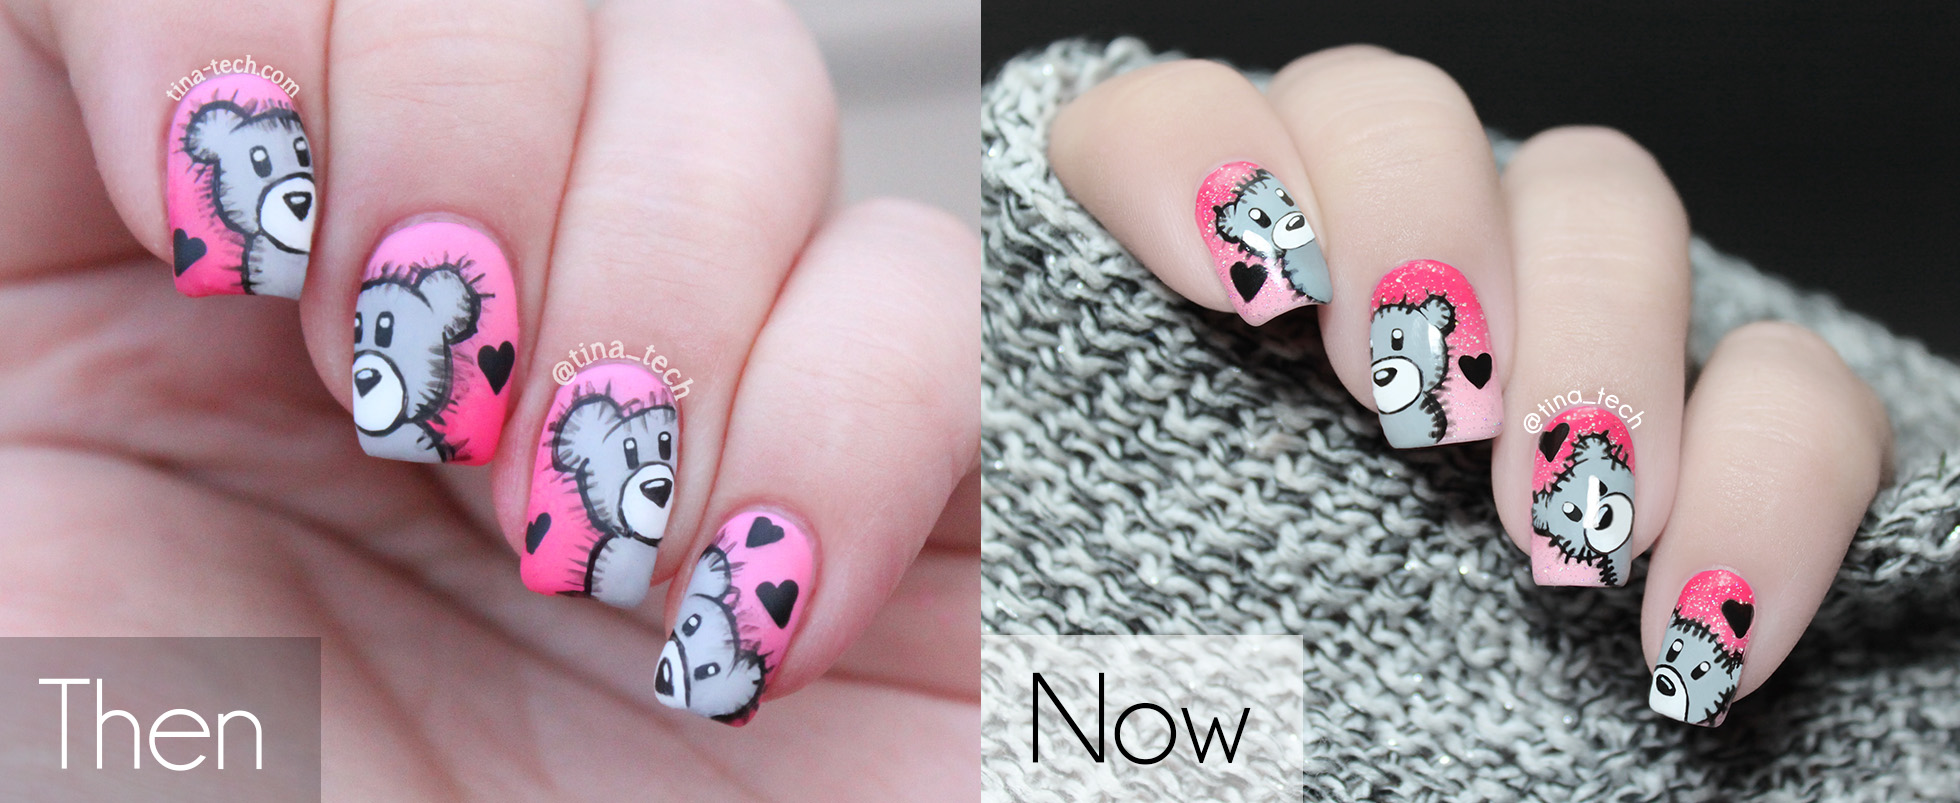 Then and Now - Cute Teddy Bear Nail Art